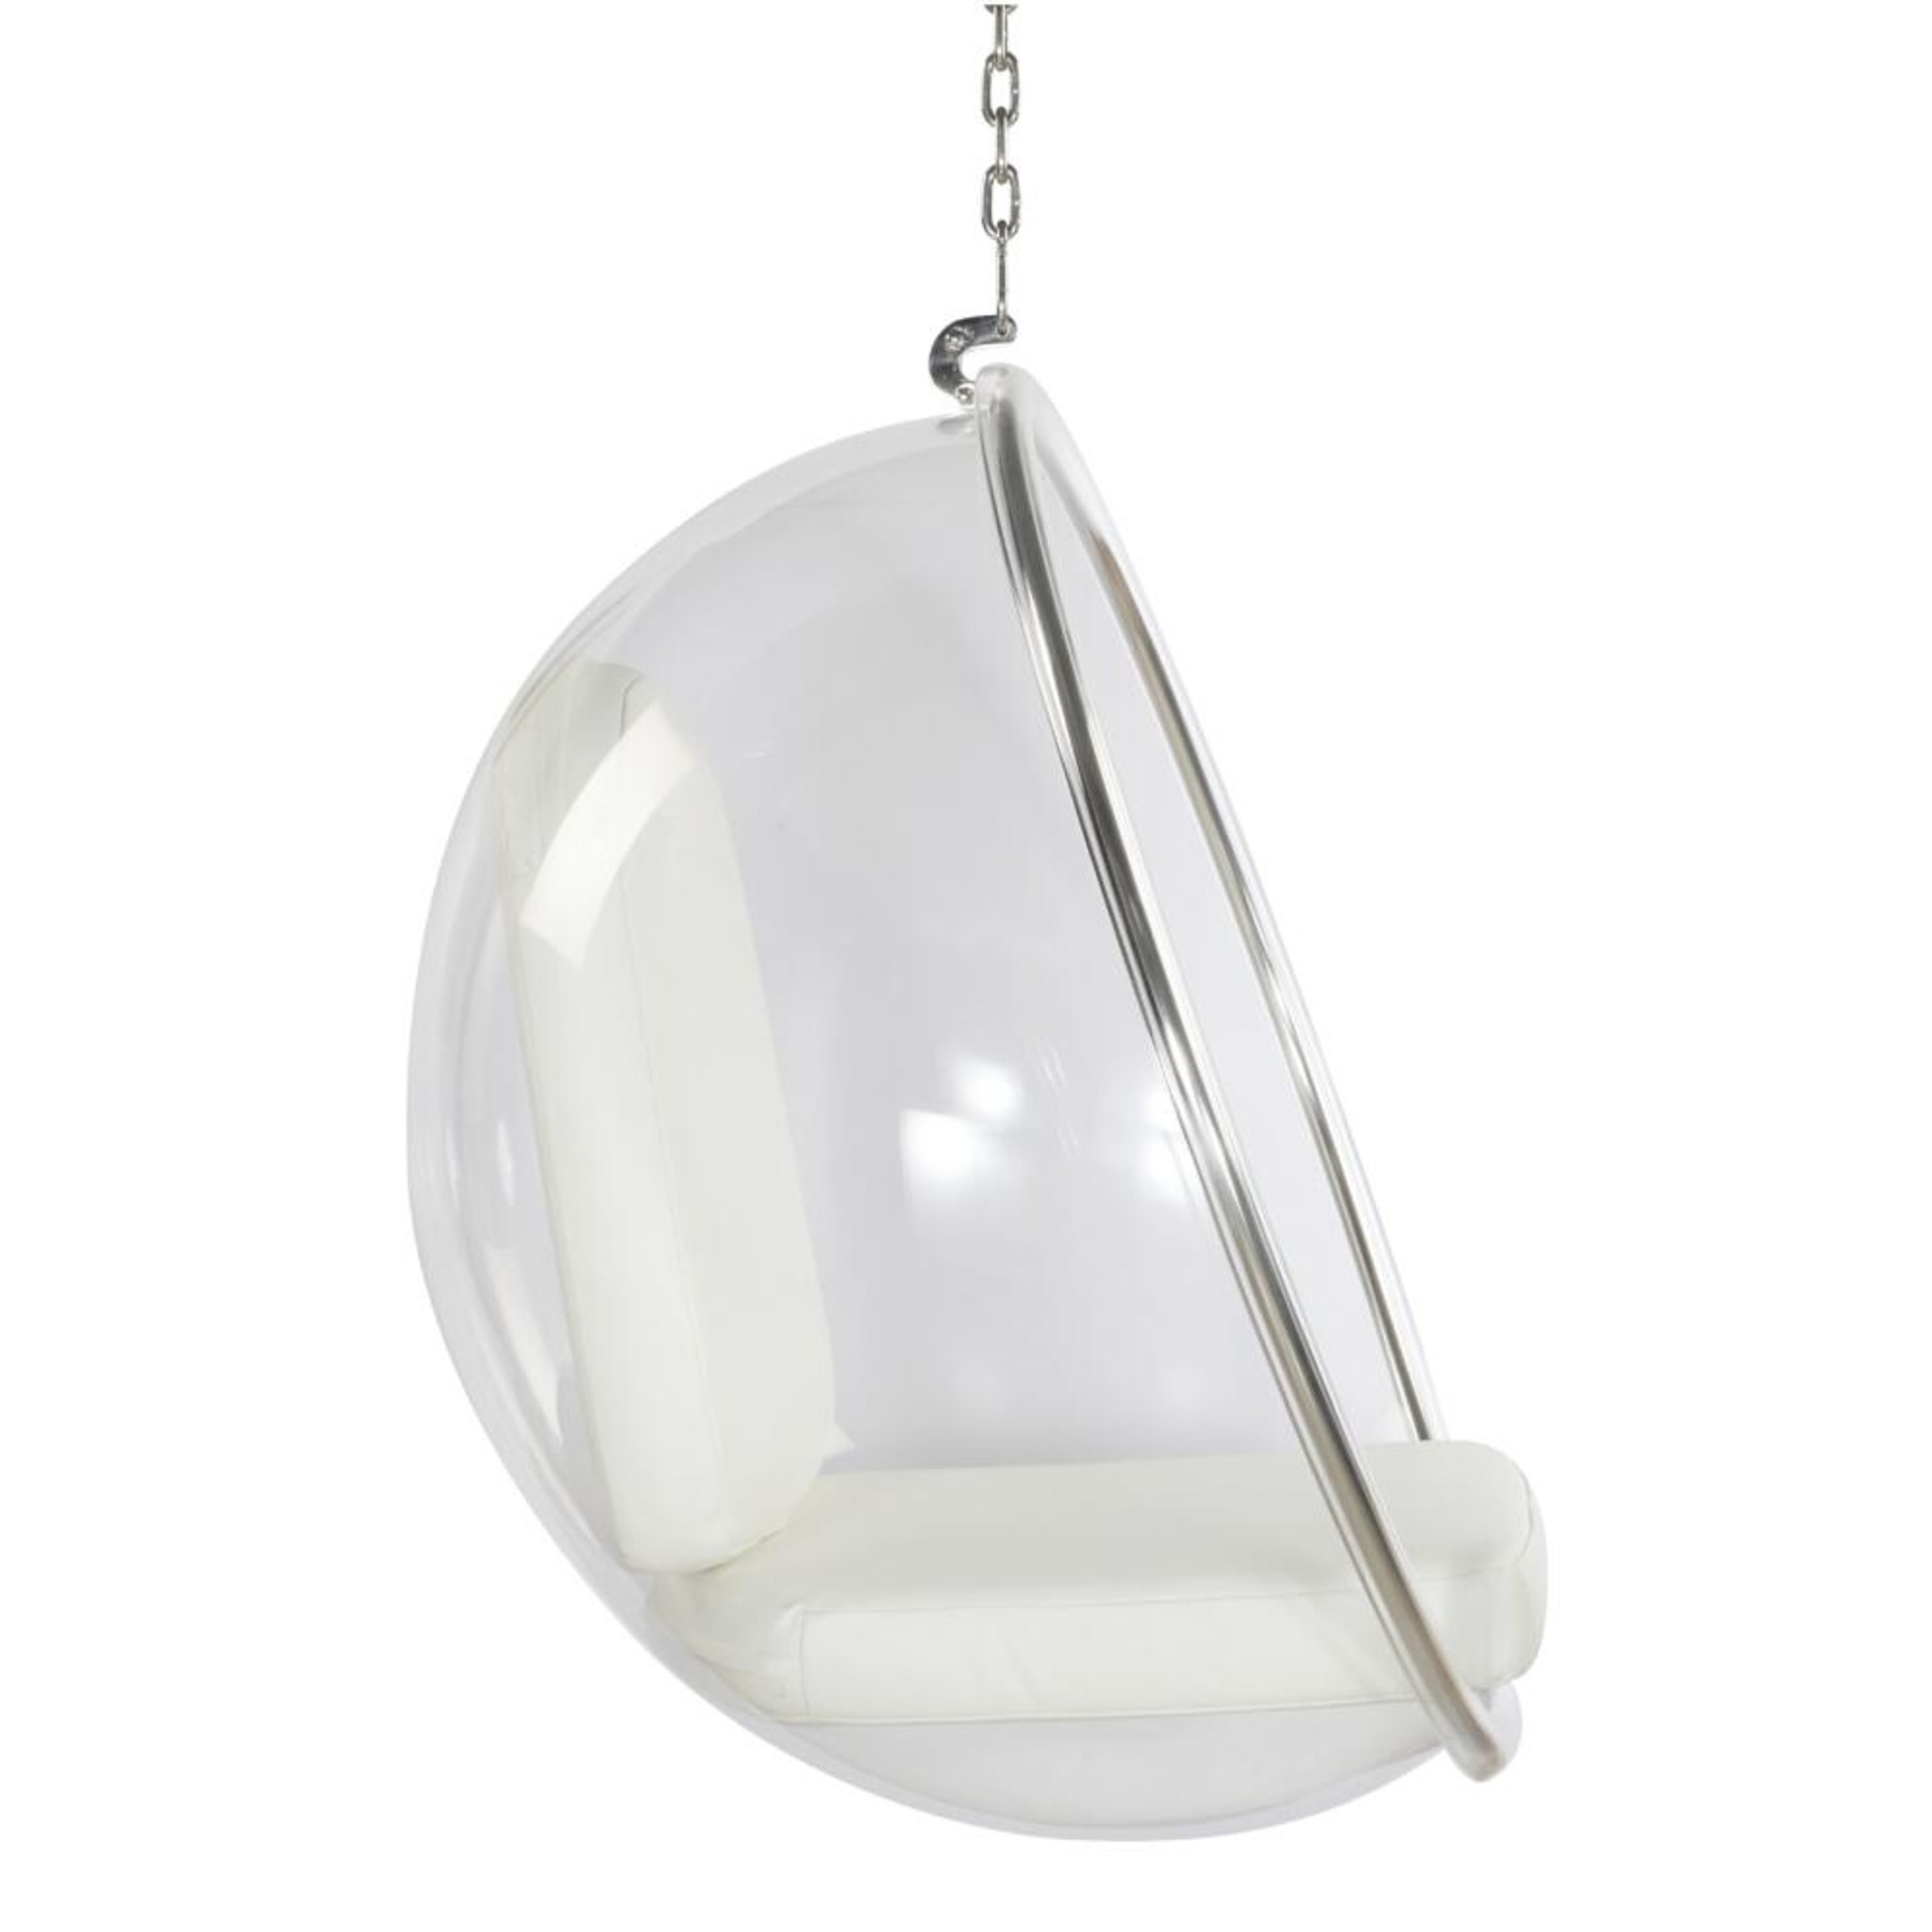 fine mod imports ball acrylic accent bubble standing chrome chair white cushion set included.jpg